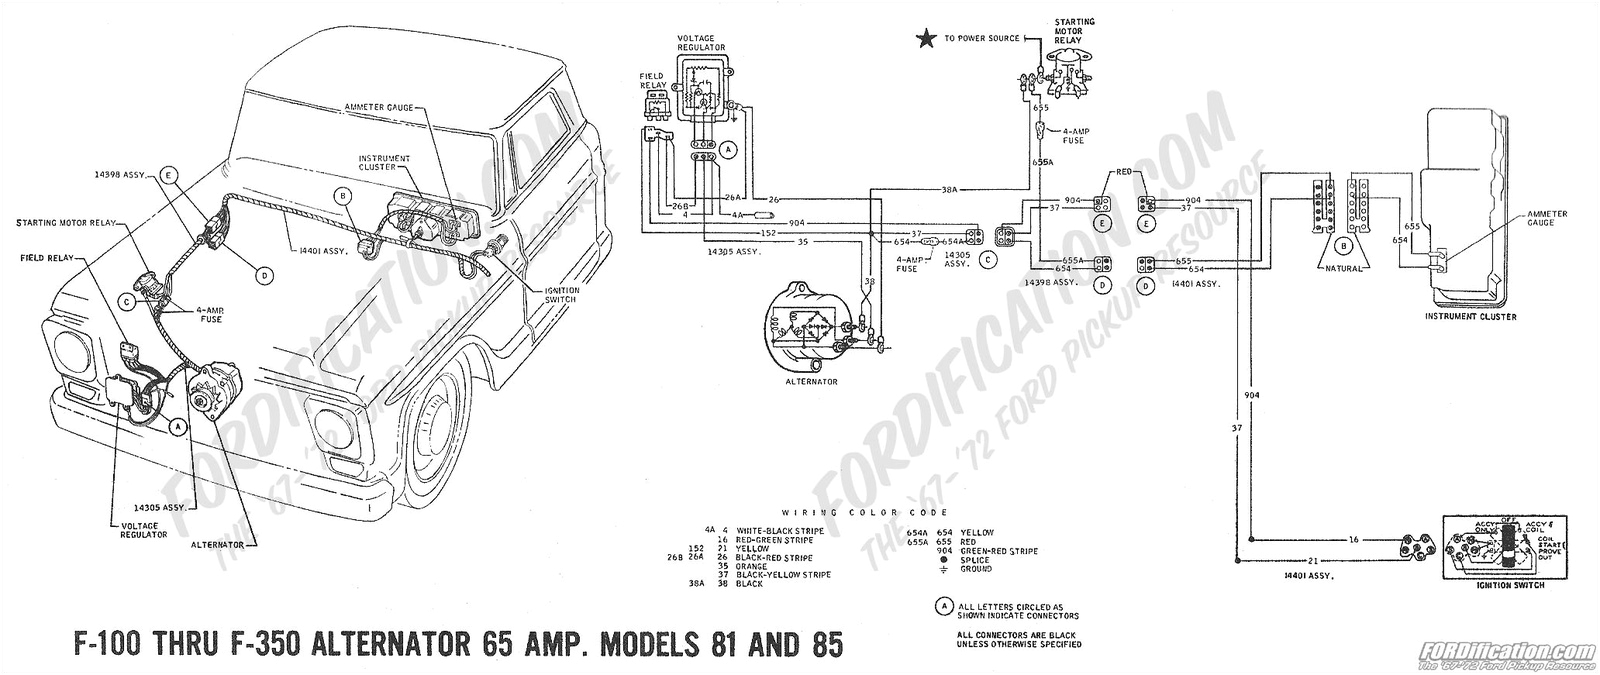 1975 ford f100 engine wiring wiring diagram show 1975 ford f100 alternator wiring diagram 1975 ford f100 electrical diagram